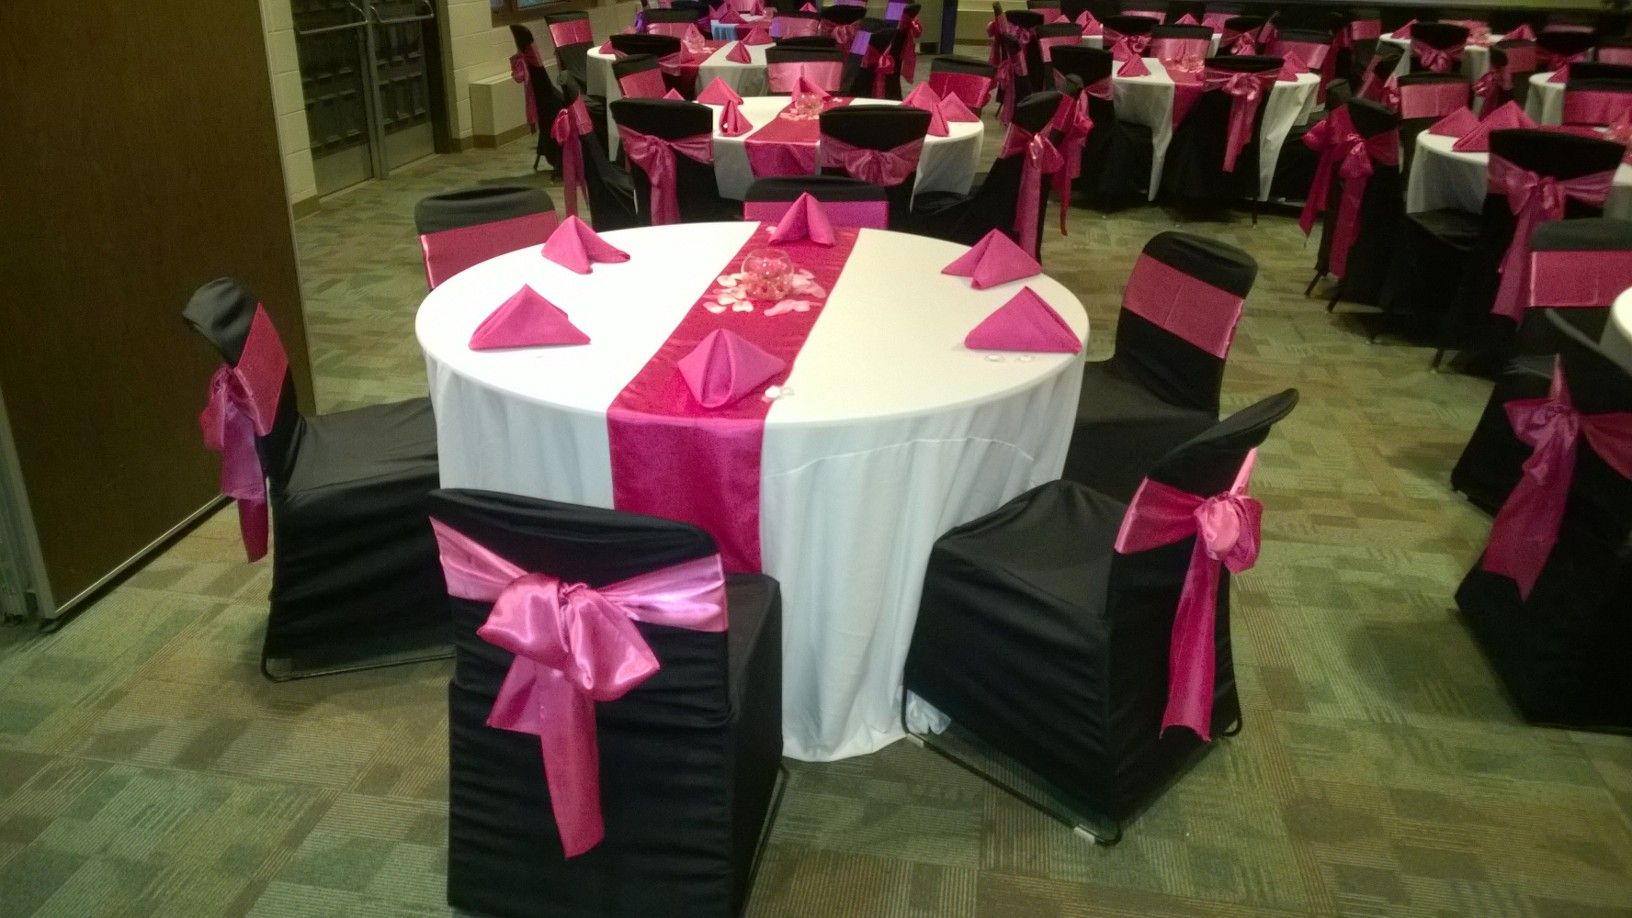 Enjoyable Black Chair Covers With Hot Pink Satin Sashes Traditional Beatyapartments Chair Design Images Beatyapartmentscom